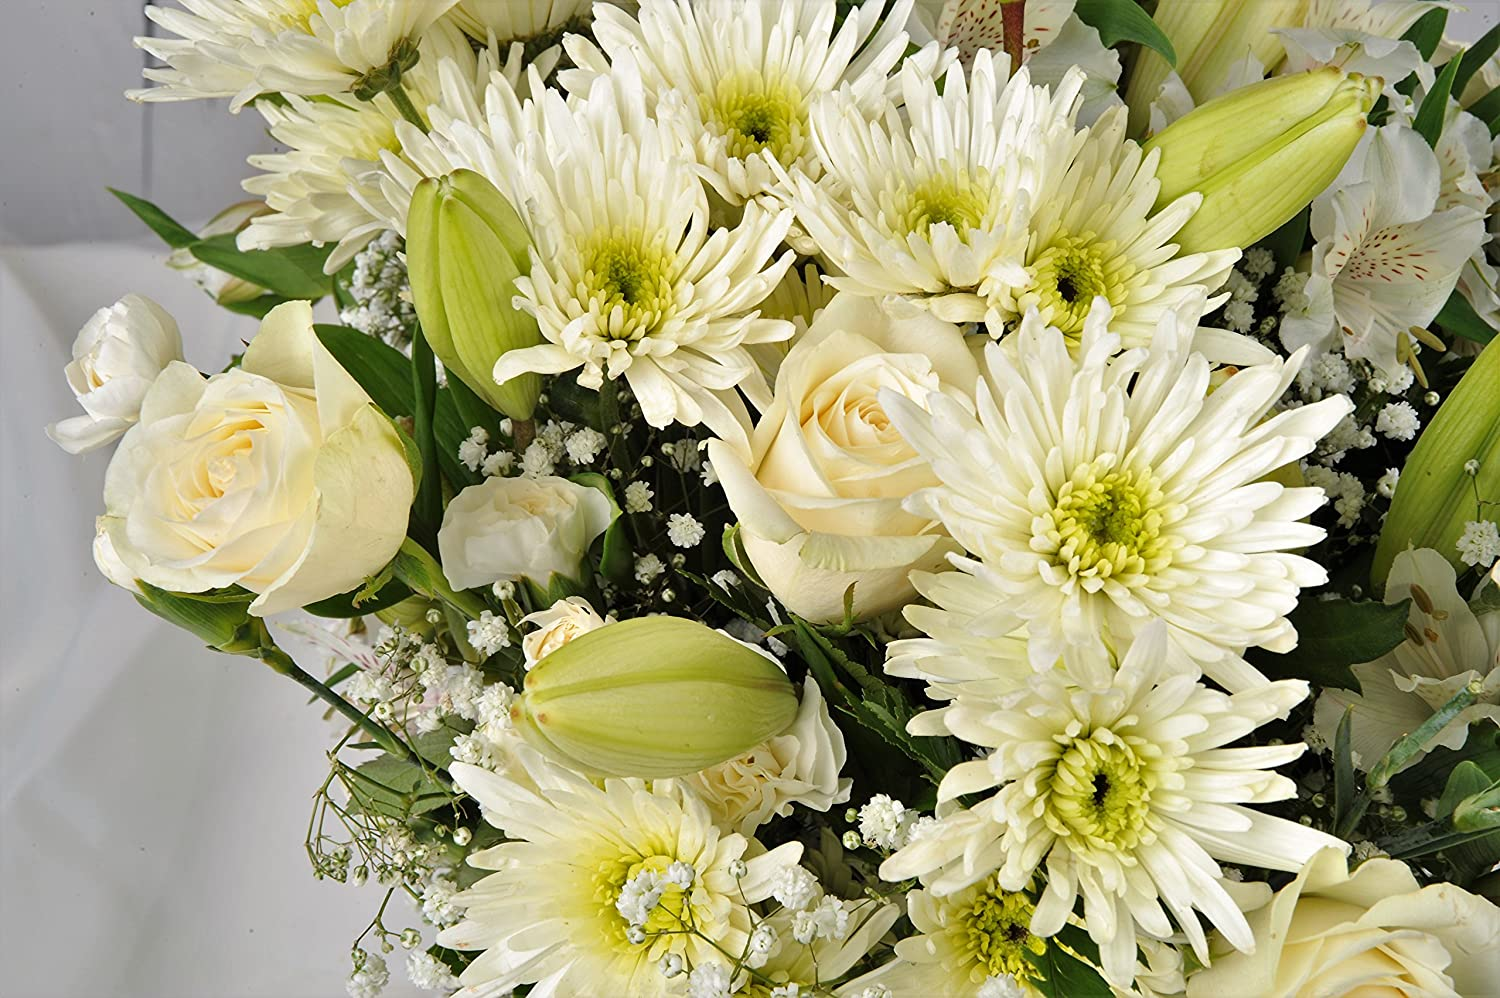 Sympathy flowers delivered next day beautiful white luxury fresh sympathy flowers delivered next day beautiful white luxury fresh flower bouquet free uk delivery within 1hr izmirmasajfo